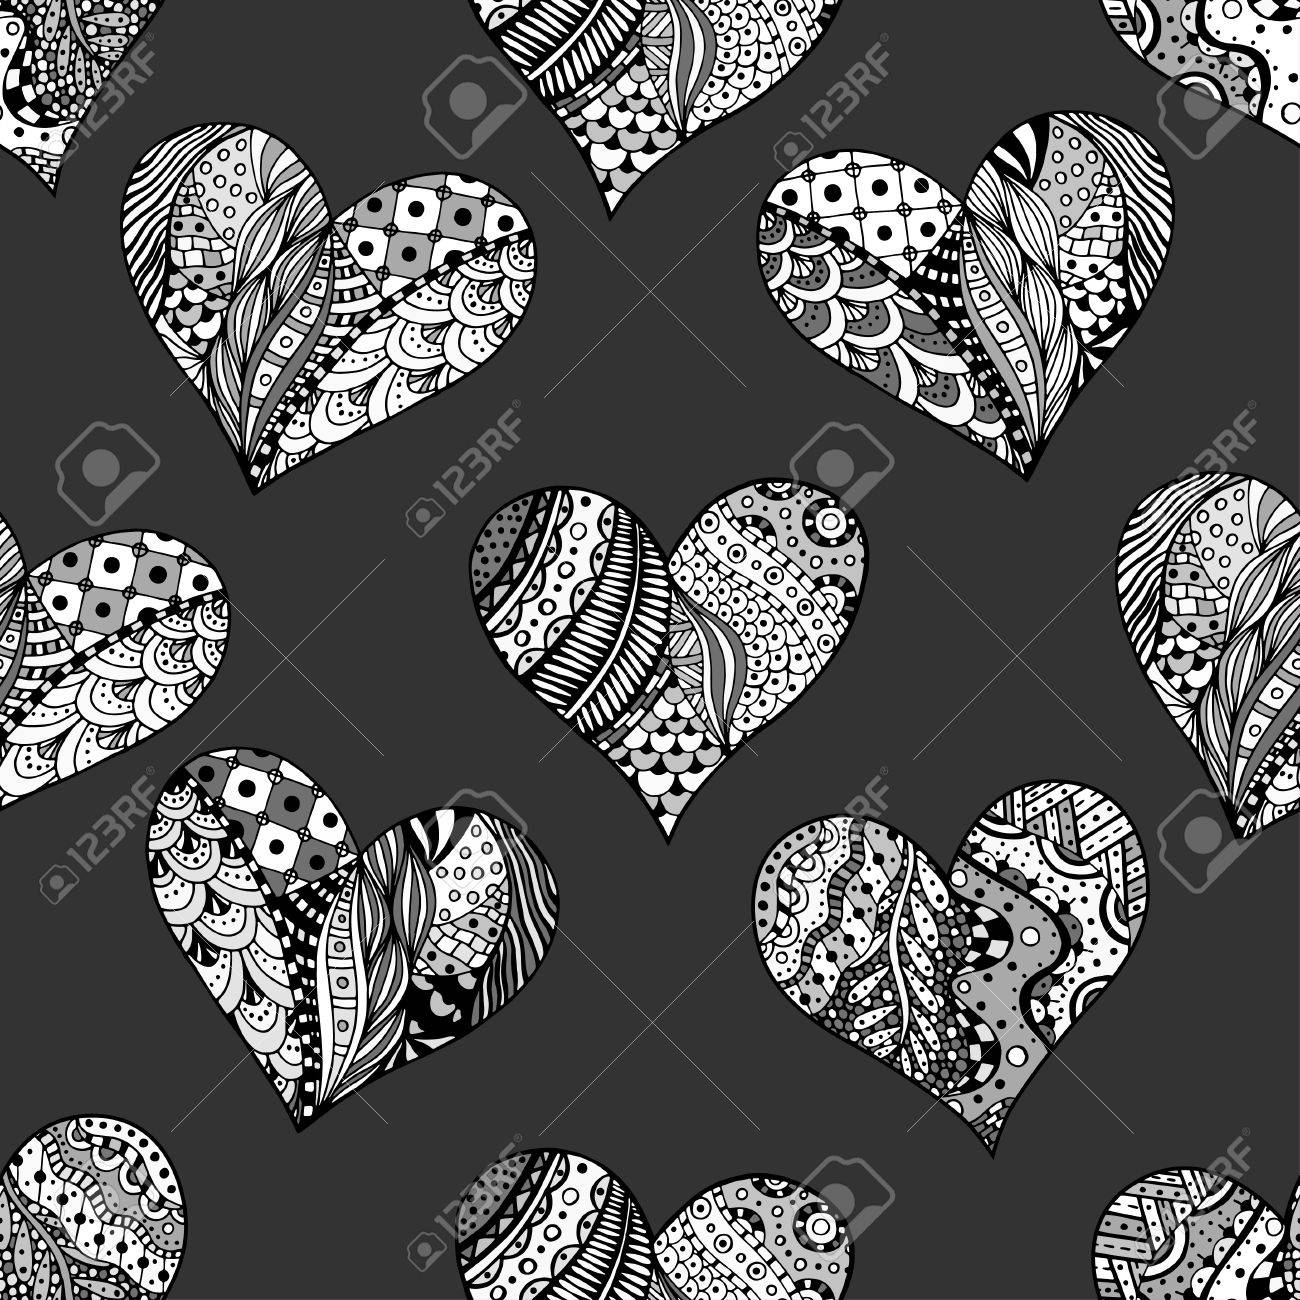 Colouring in pattern - Co Colouring In Pages Love Hearts Hand Drawn Ornamental Heart With Love In Doodle Zentangle